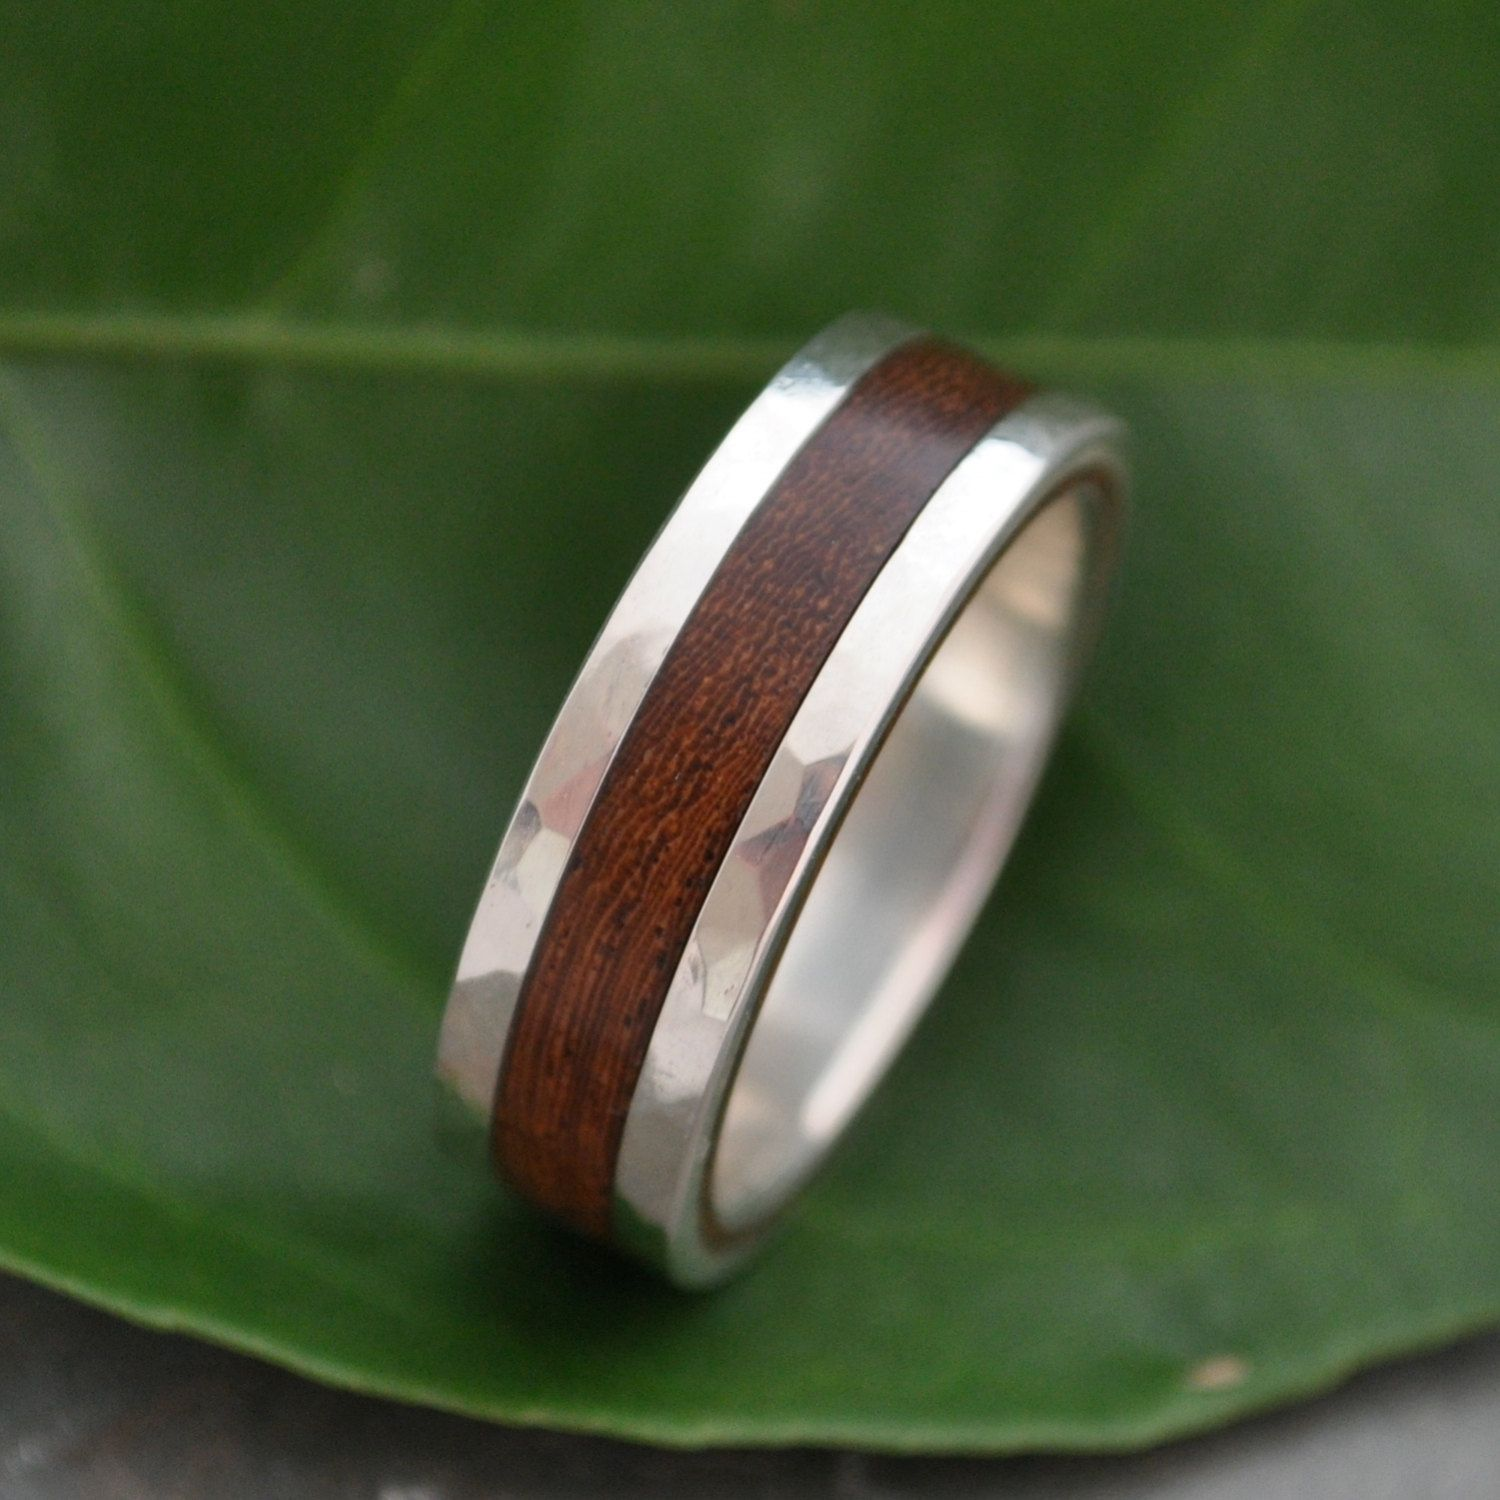 group with village sustainable the wood green rings articles wooden going inlay wedding eco